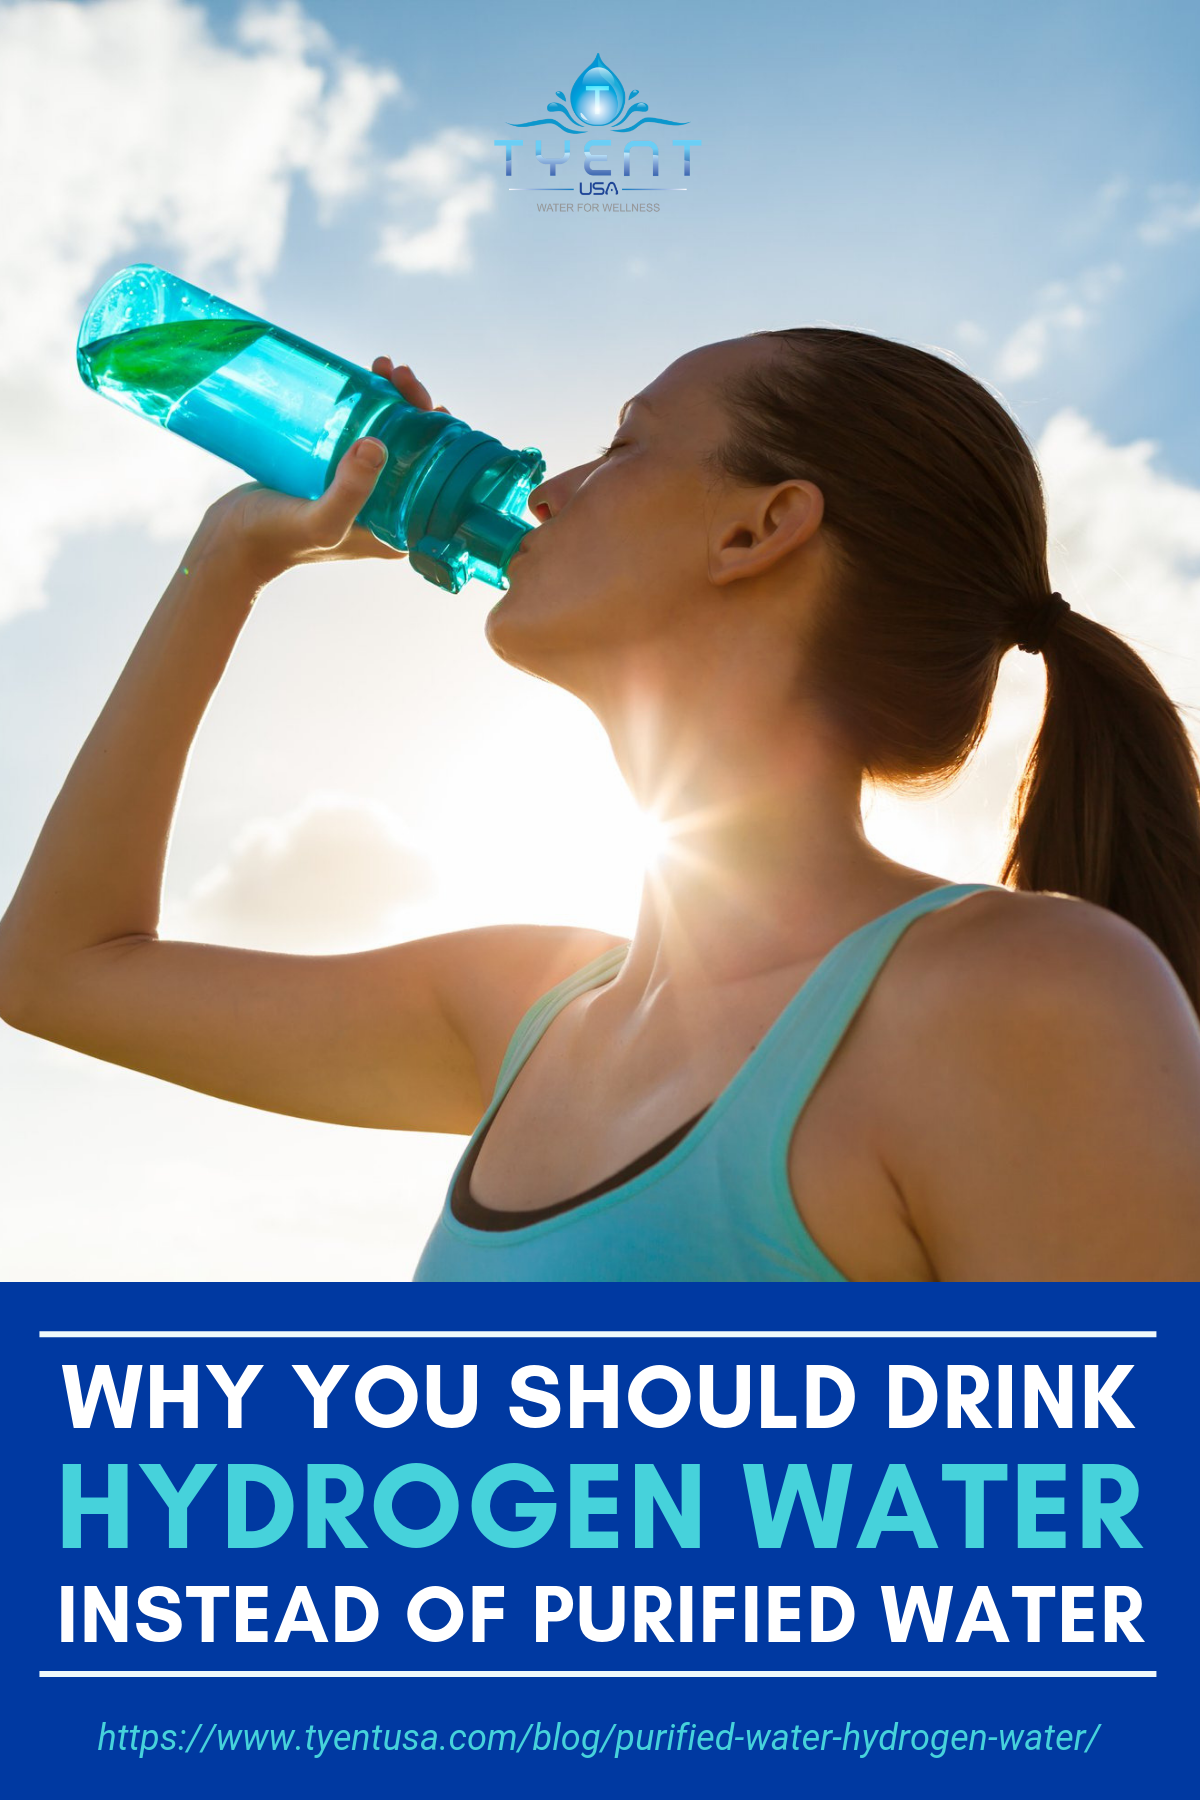 Why You Should Drink Hydrogen Water Instead Of Purified Water https://www.tyentusa.com/blog/purified-water-hydrogen-water/